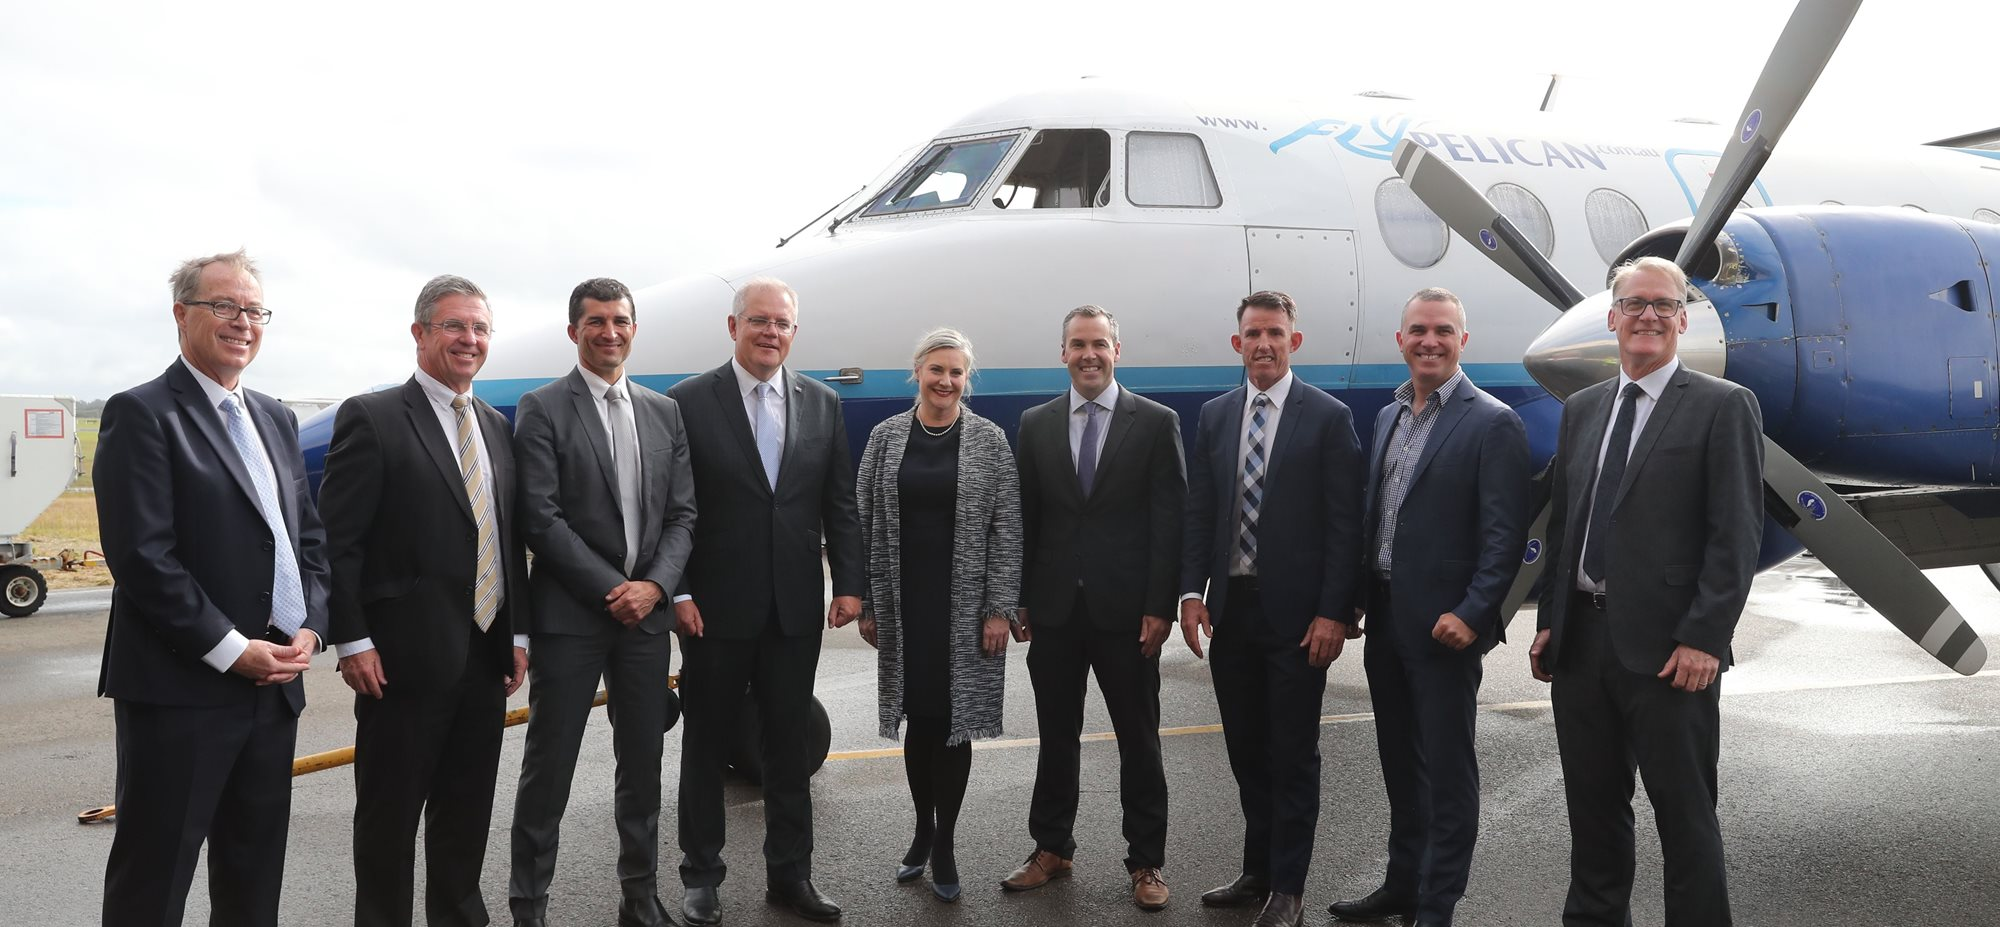 Airport runway upgrade a boon for Greater Newcastle